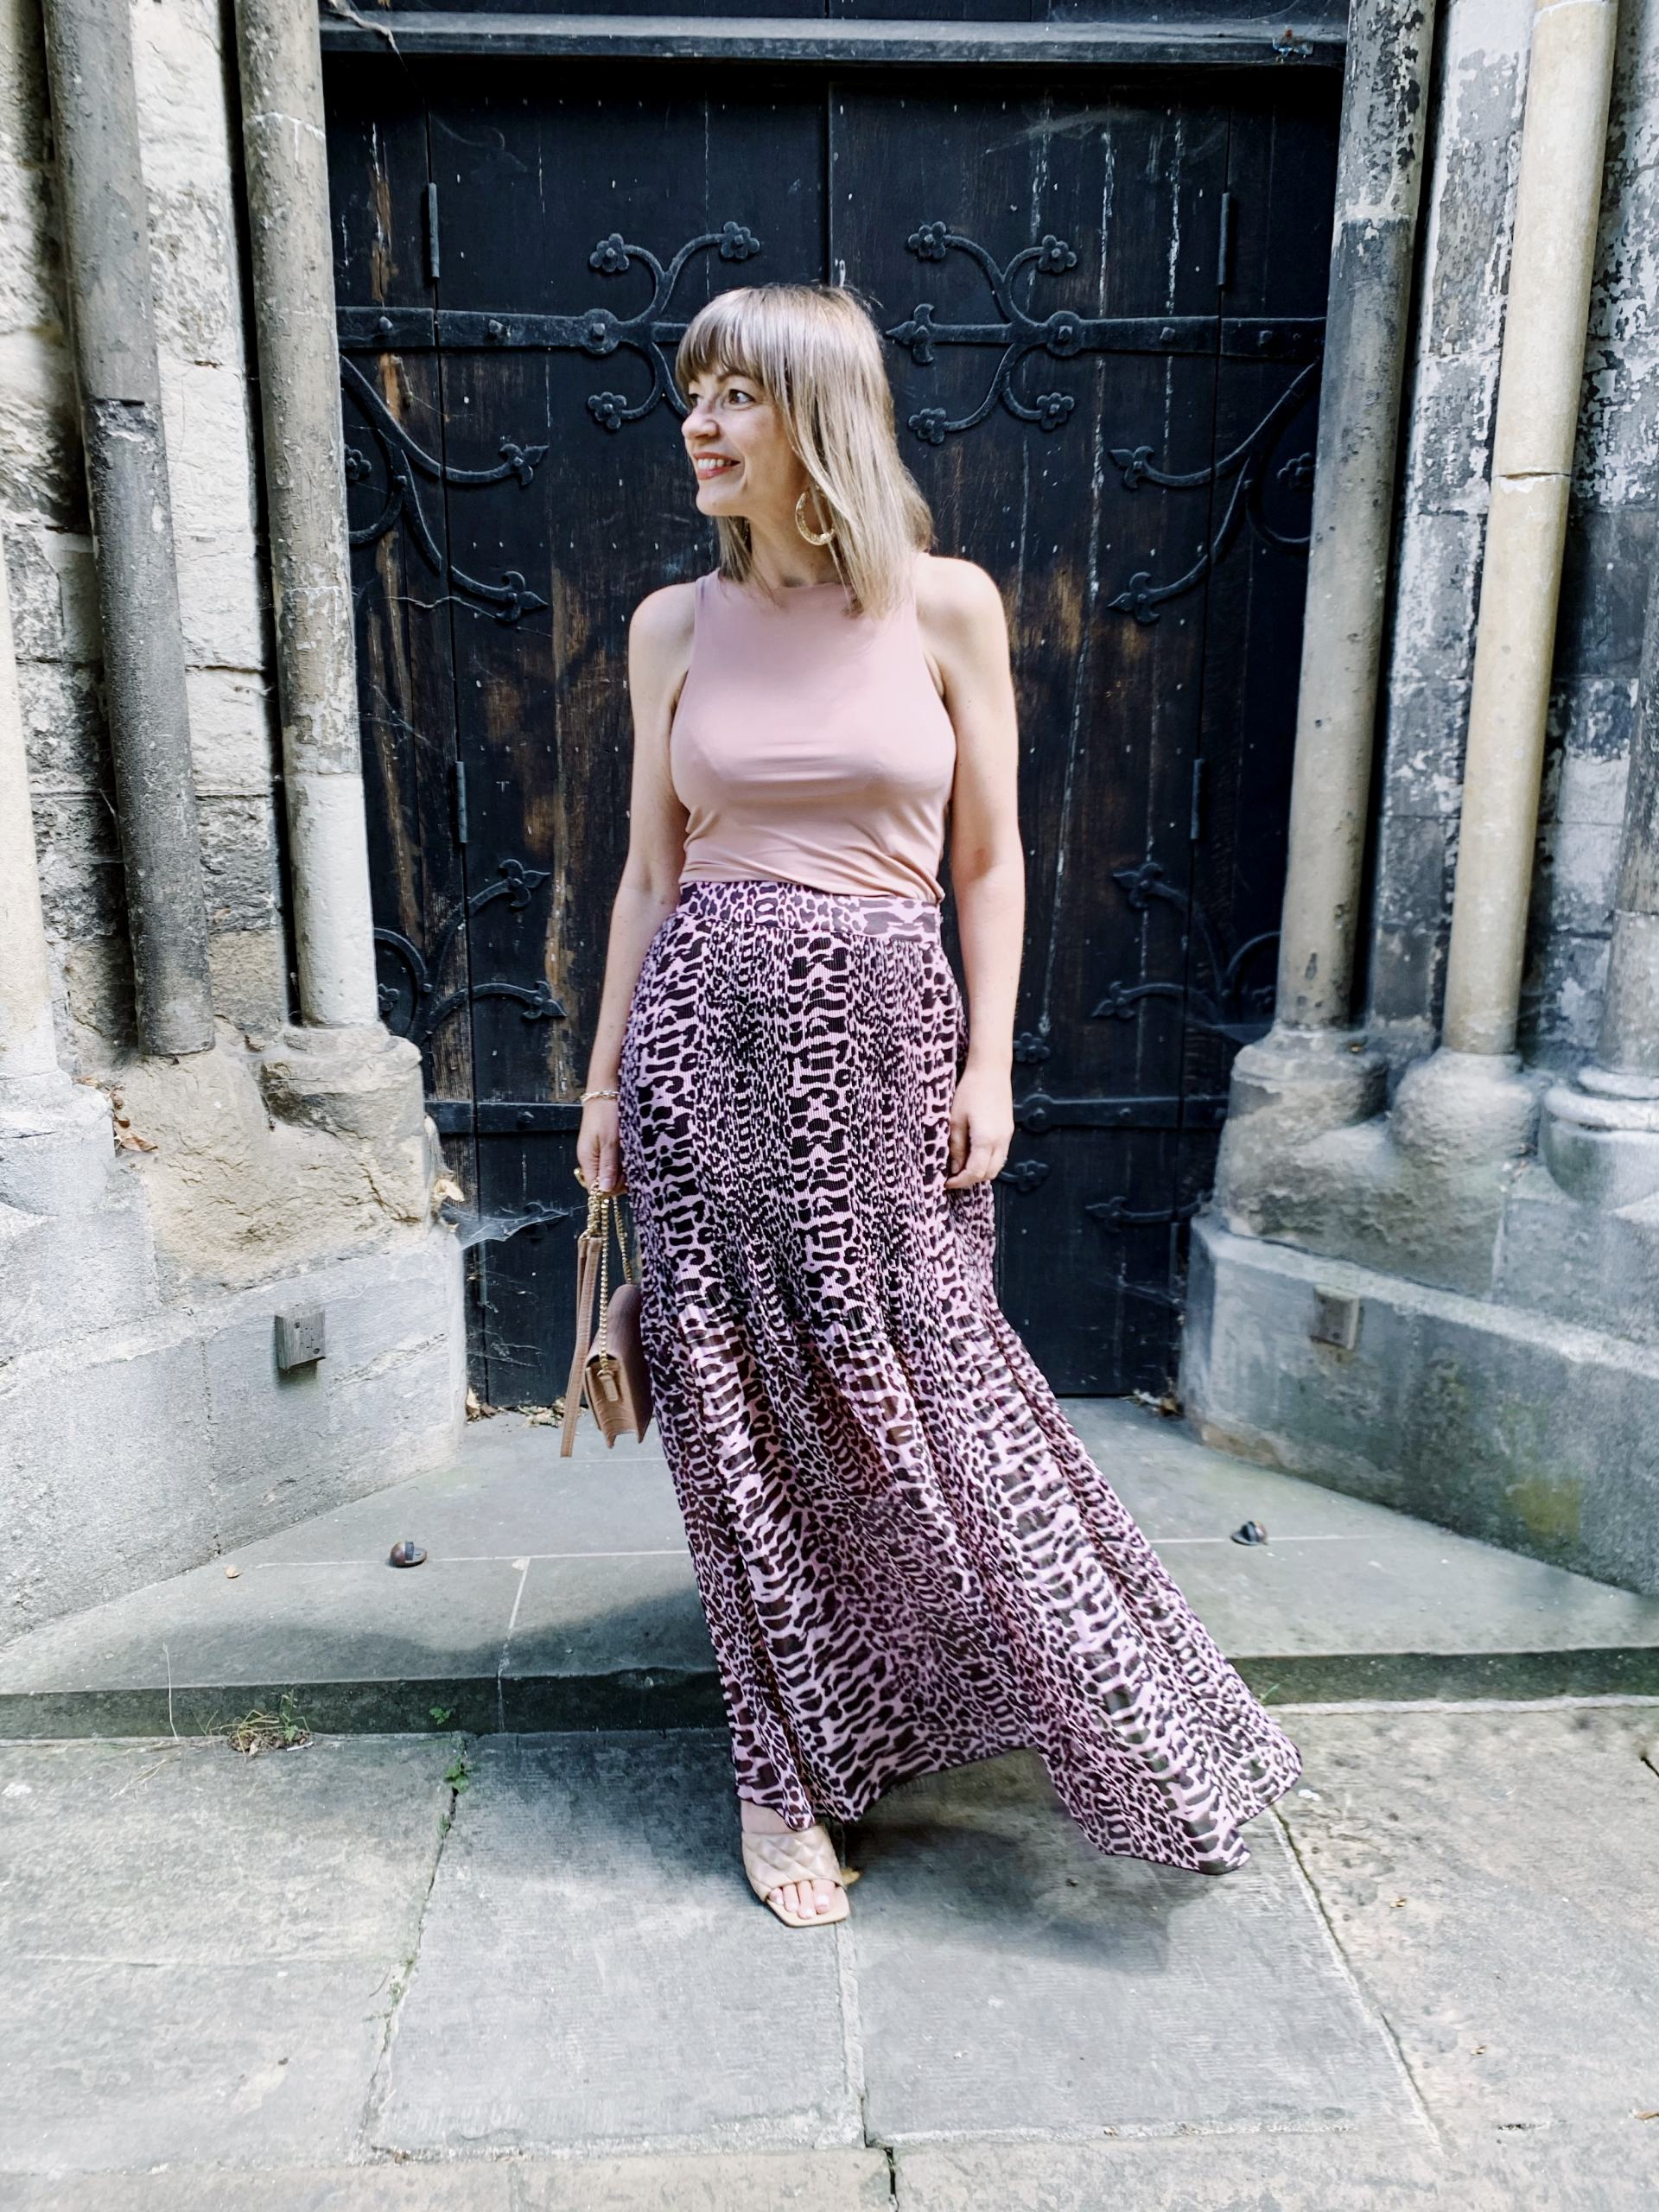 How to wear a maxi skirt for a stylish look